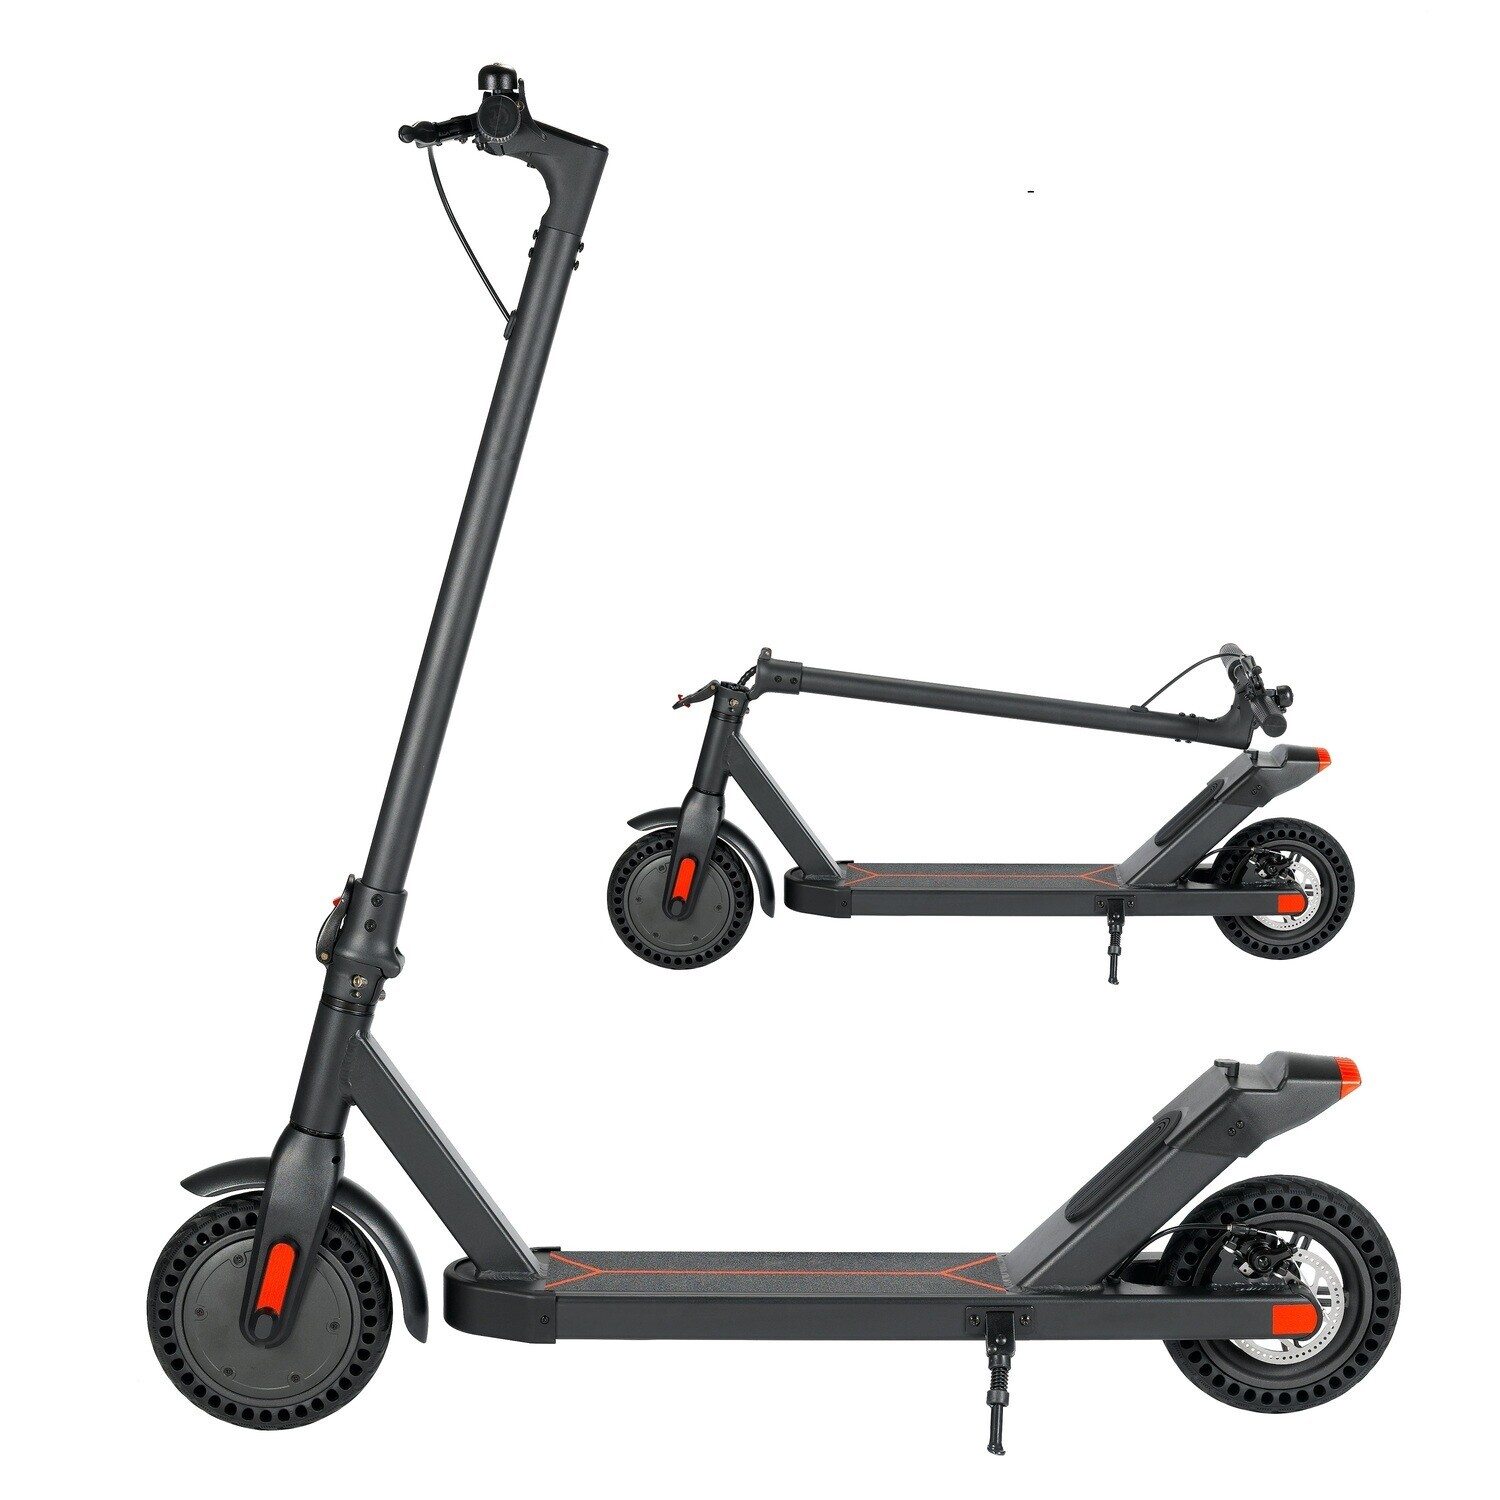 The beautiful L9 Folding Electrical Scooter with solid Tyres